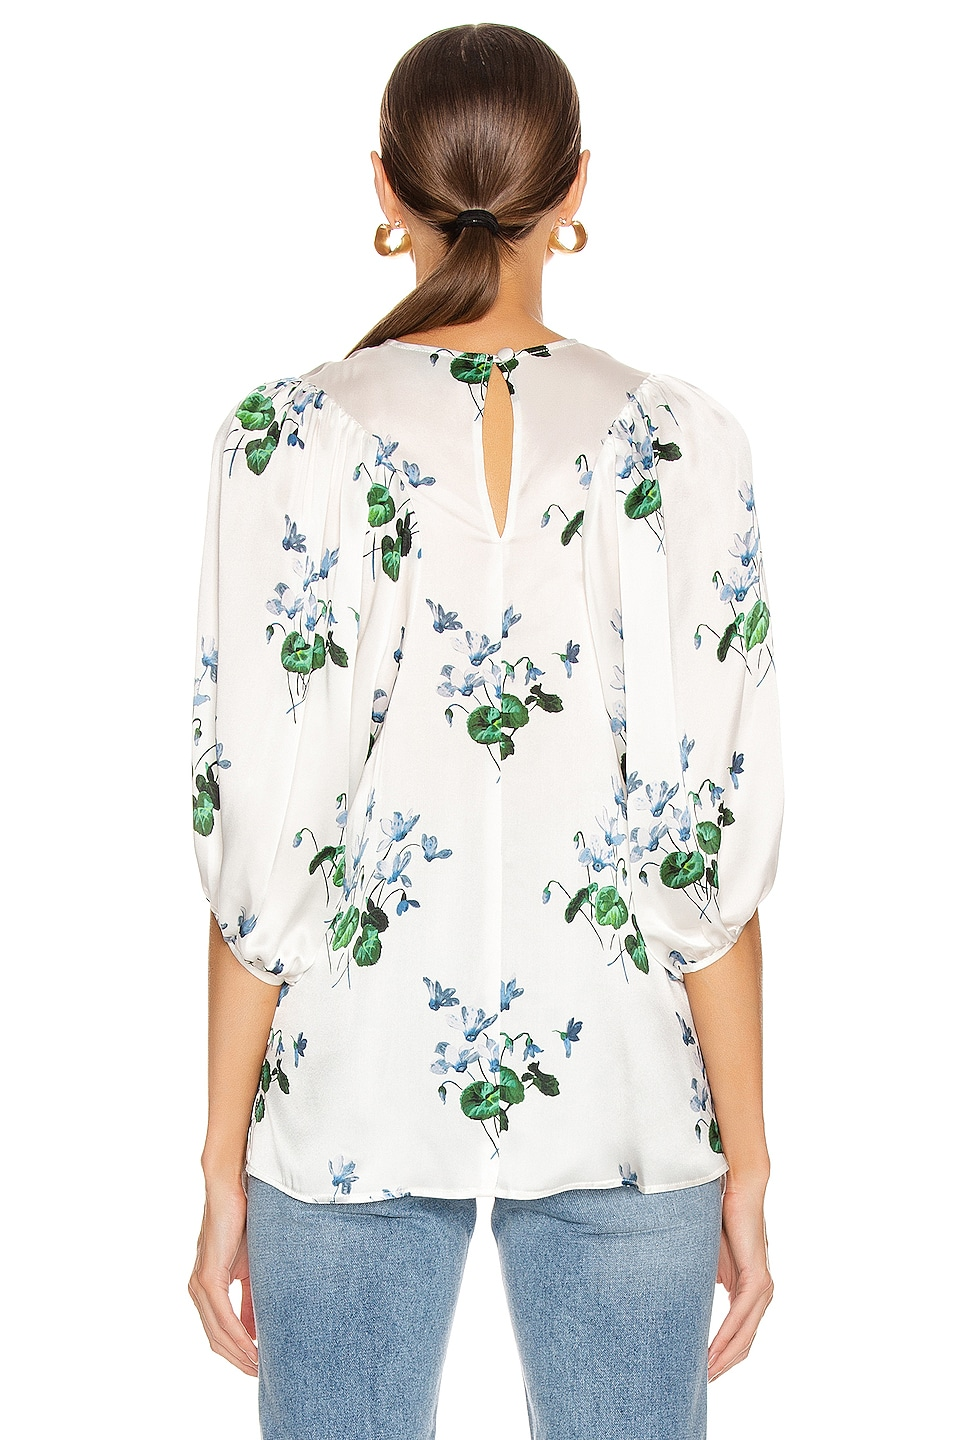 Image 3 of Les Reveries Puff Sleeve Top in Blue Daffodil & White